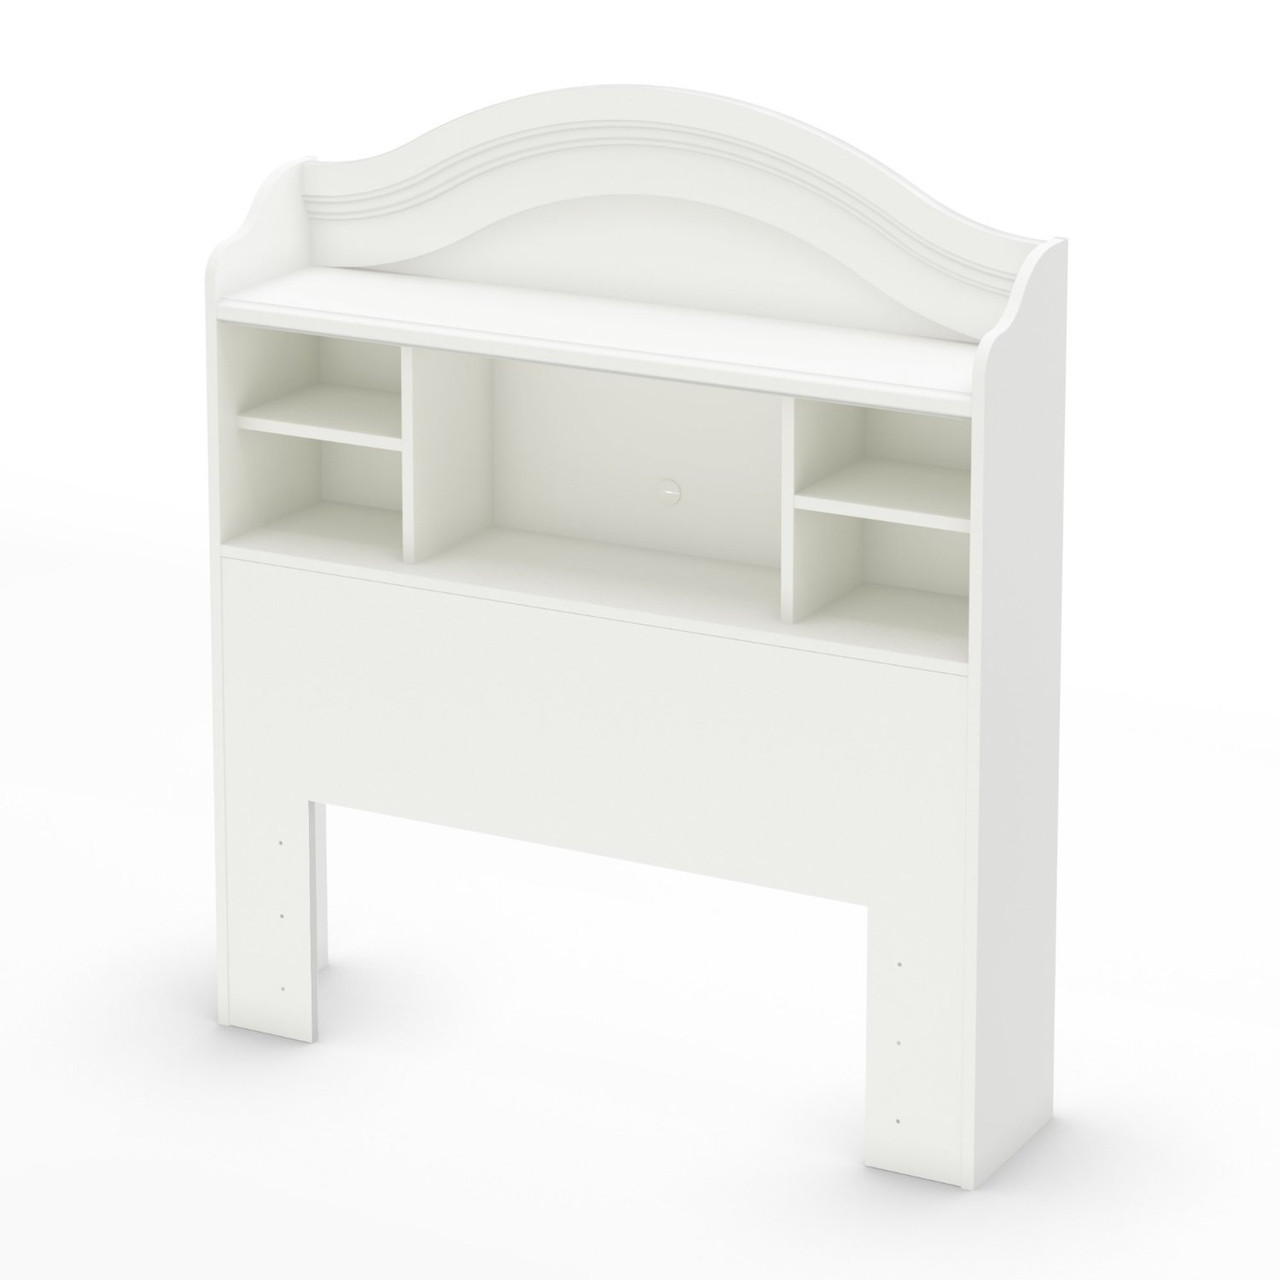 Twin Arched Bookcase Headboard In White Wood Finish